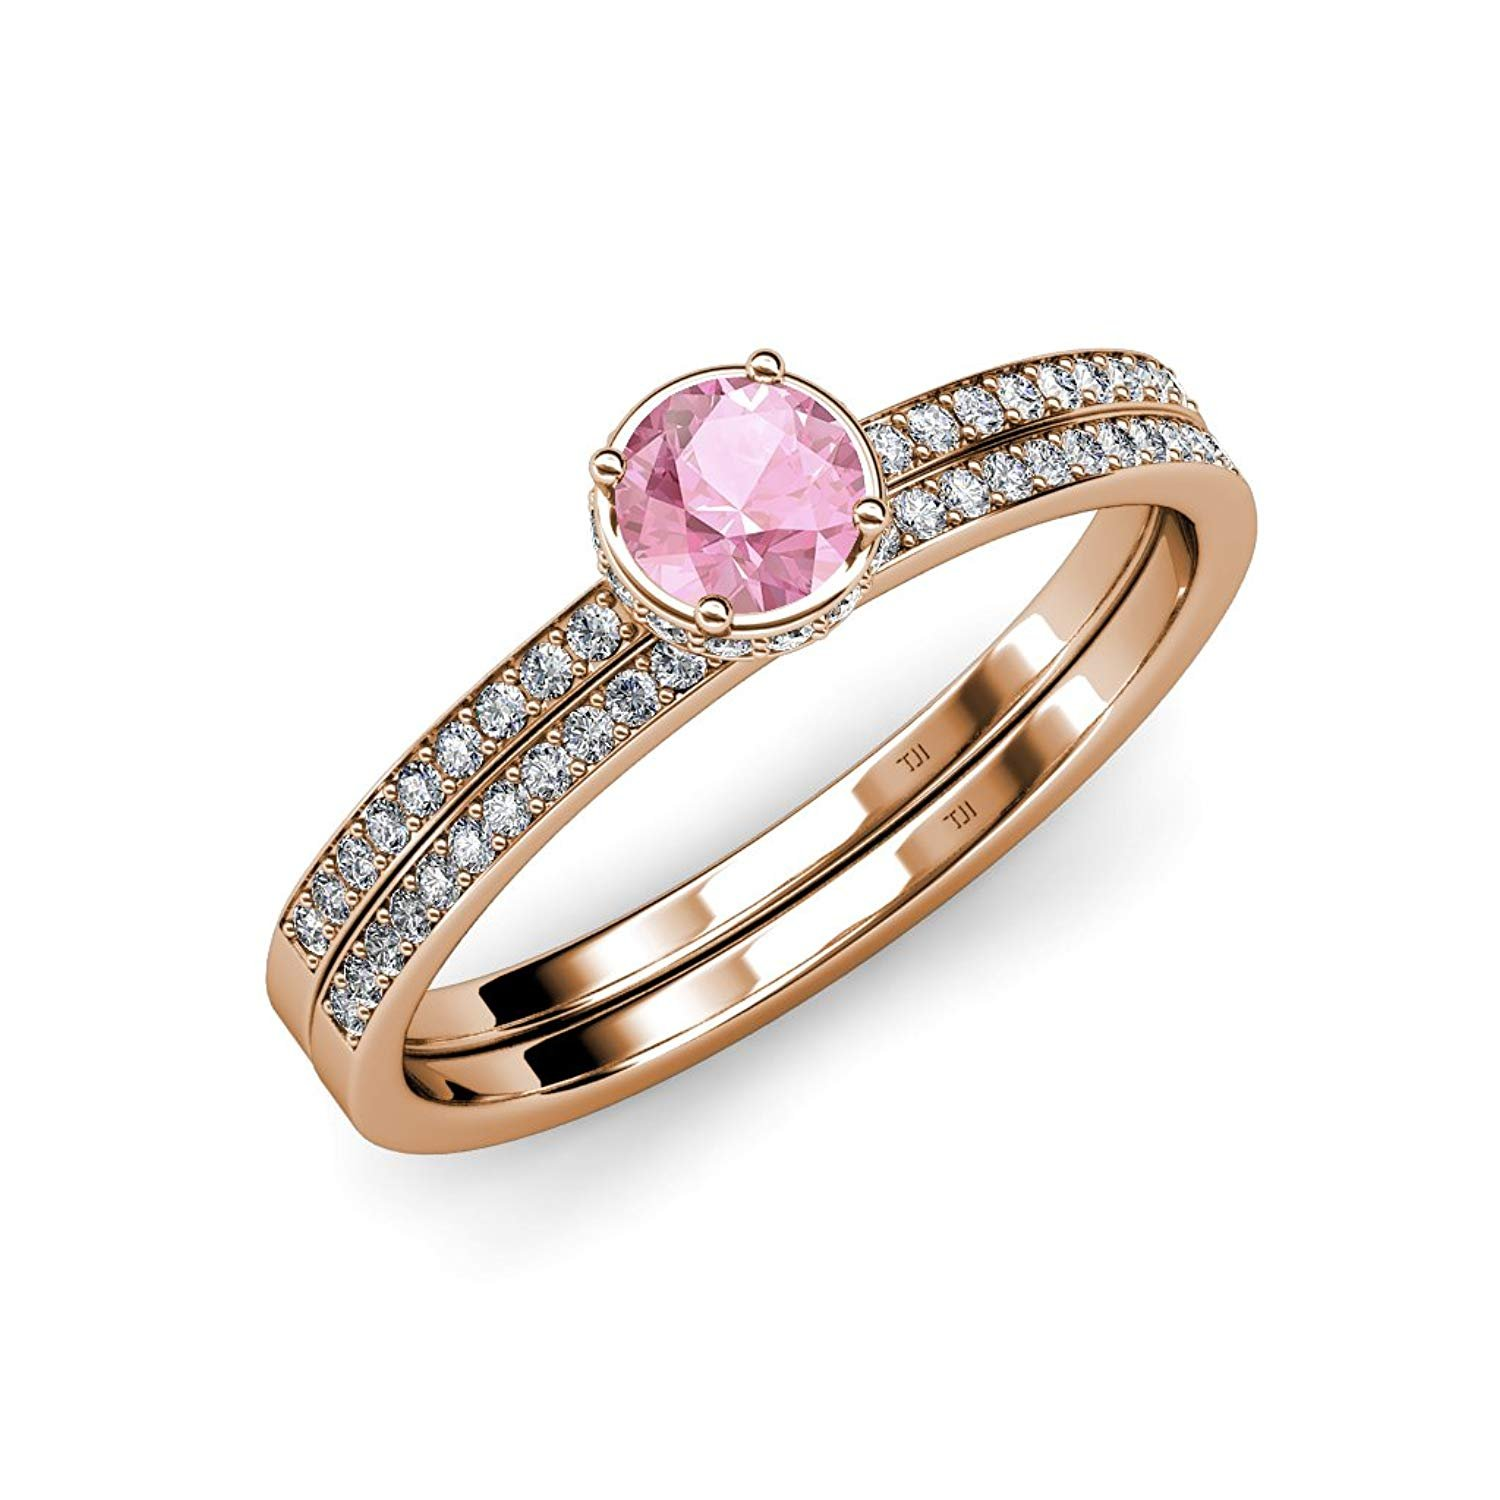 Pink Tourmaline & Diamond Halo Engagement Ring & Wedding Band Set 0.95 ct tw in 14K Rose Gold.size 6.0 by Trijewels